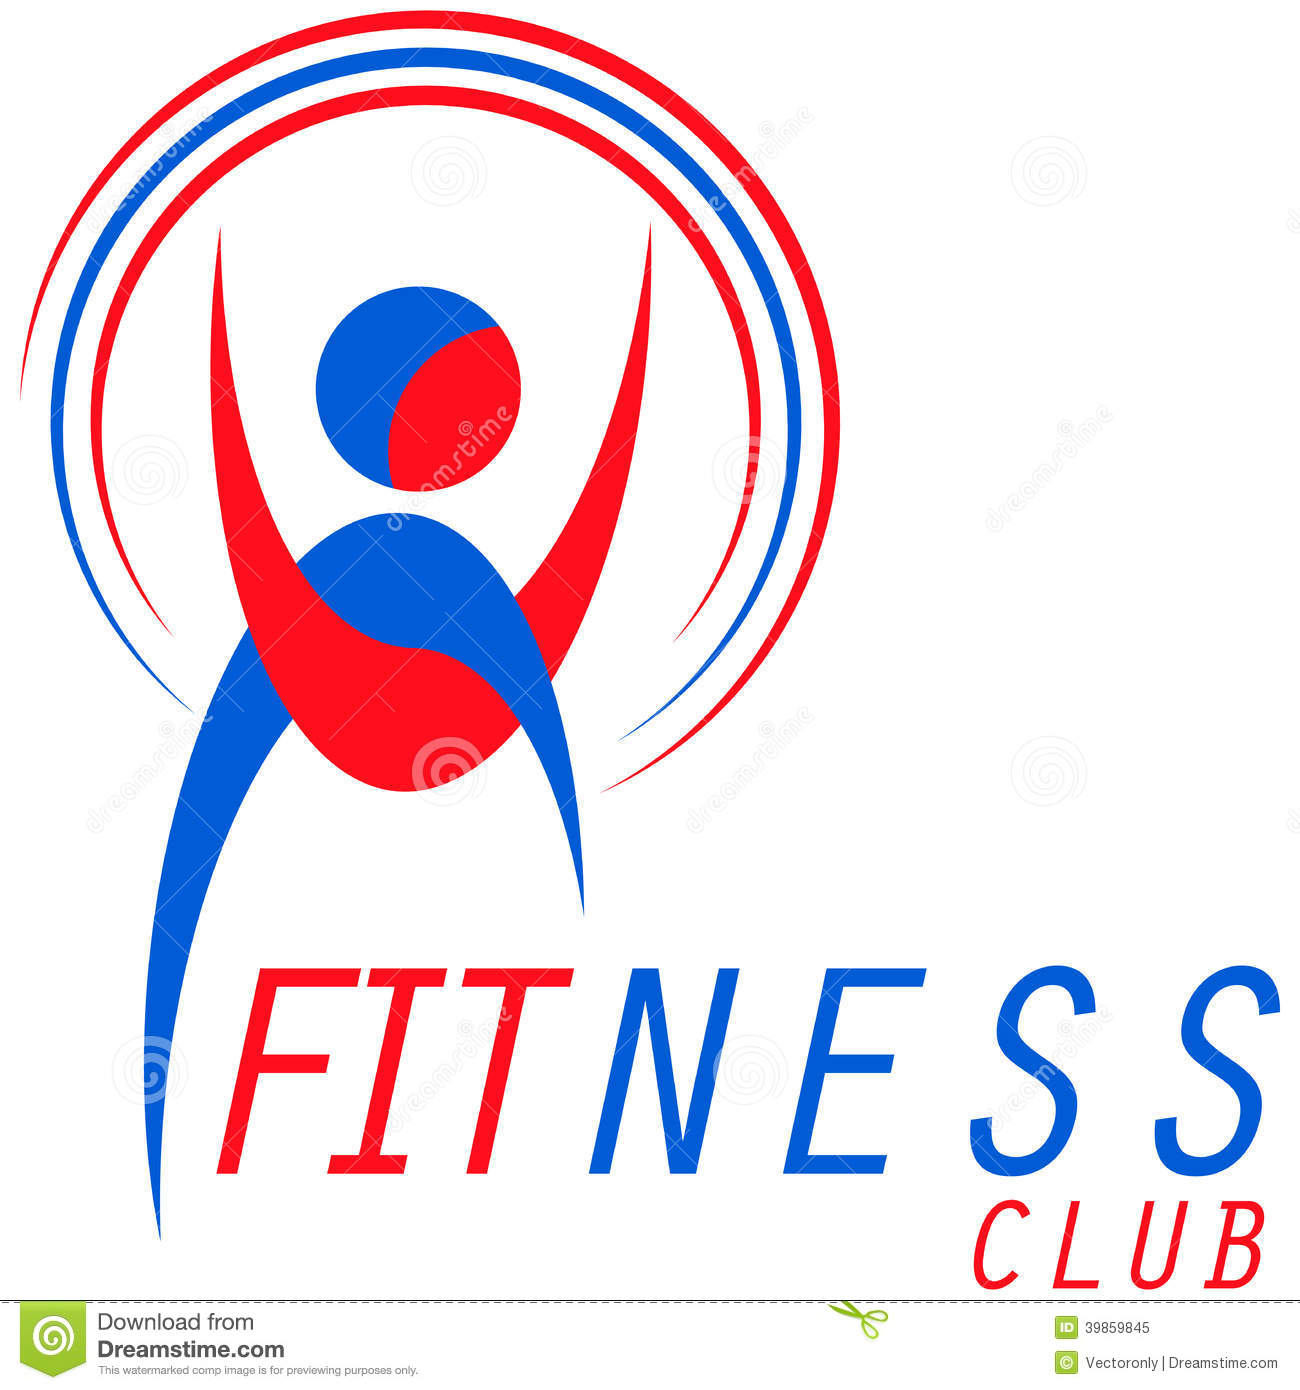 Fitness logo stock vector. Illustration of idea, sports - 39859845 for Fitness Logo Vector Free Download  104xkb